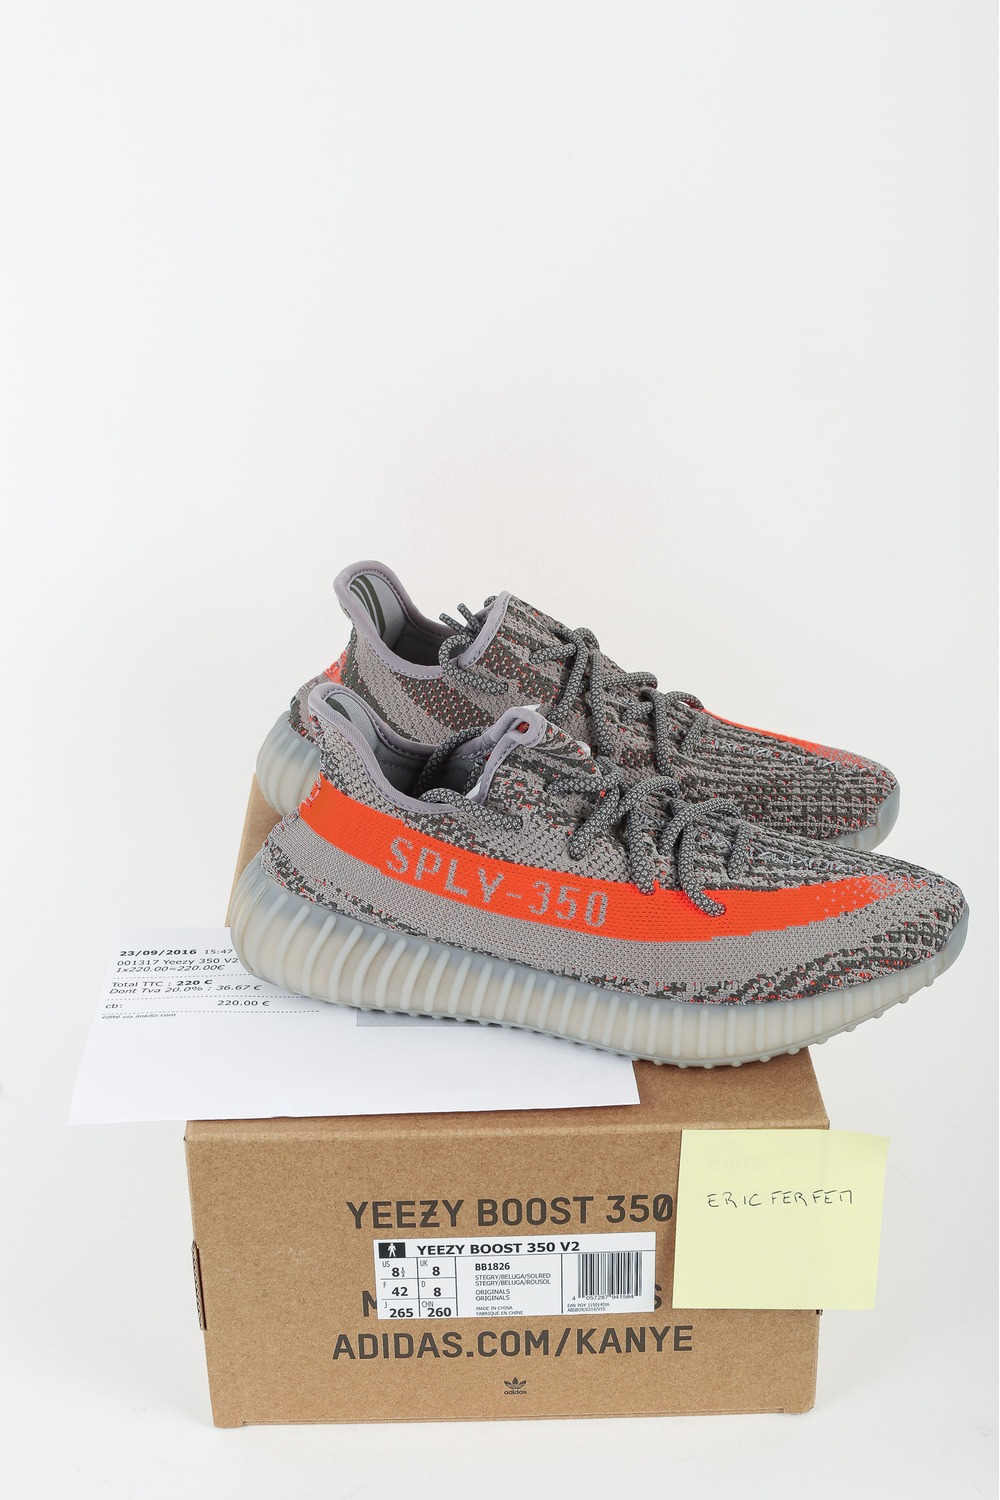 Adidas Yeezy Boost 350 v2 BY 9612 Core Black Red From